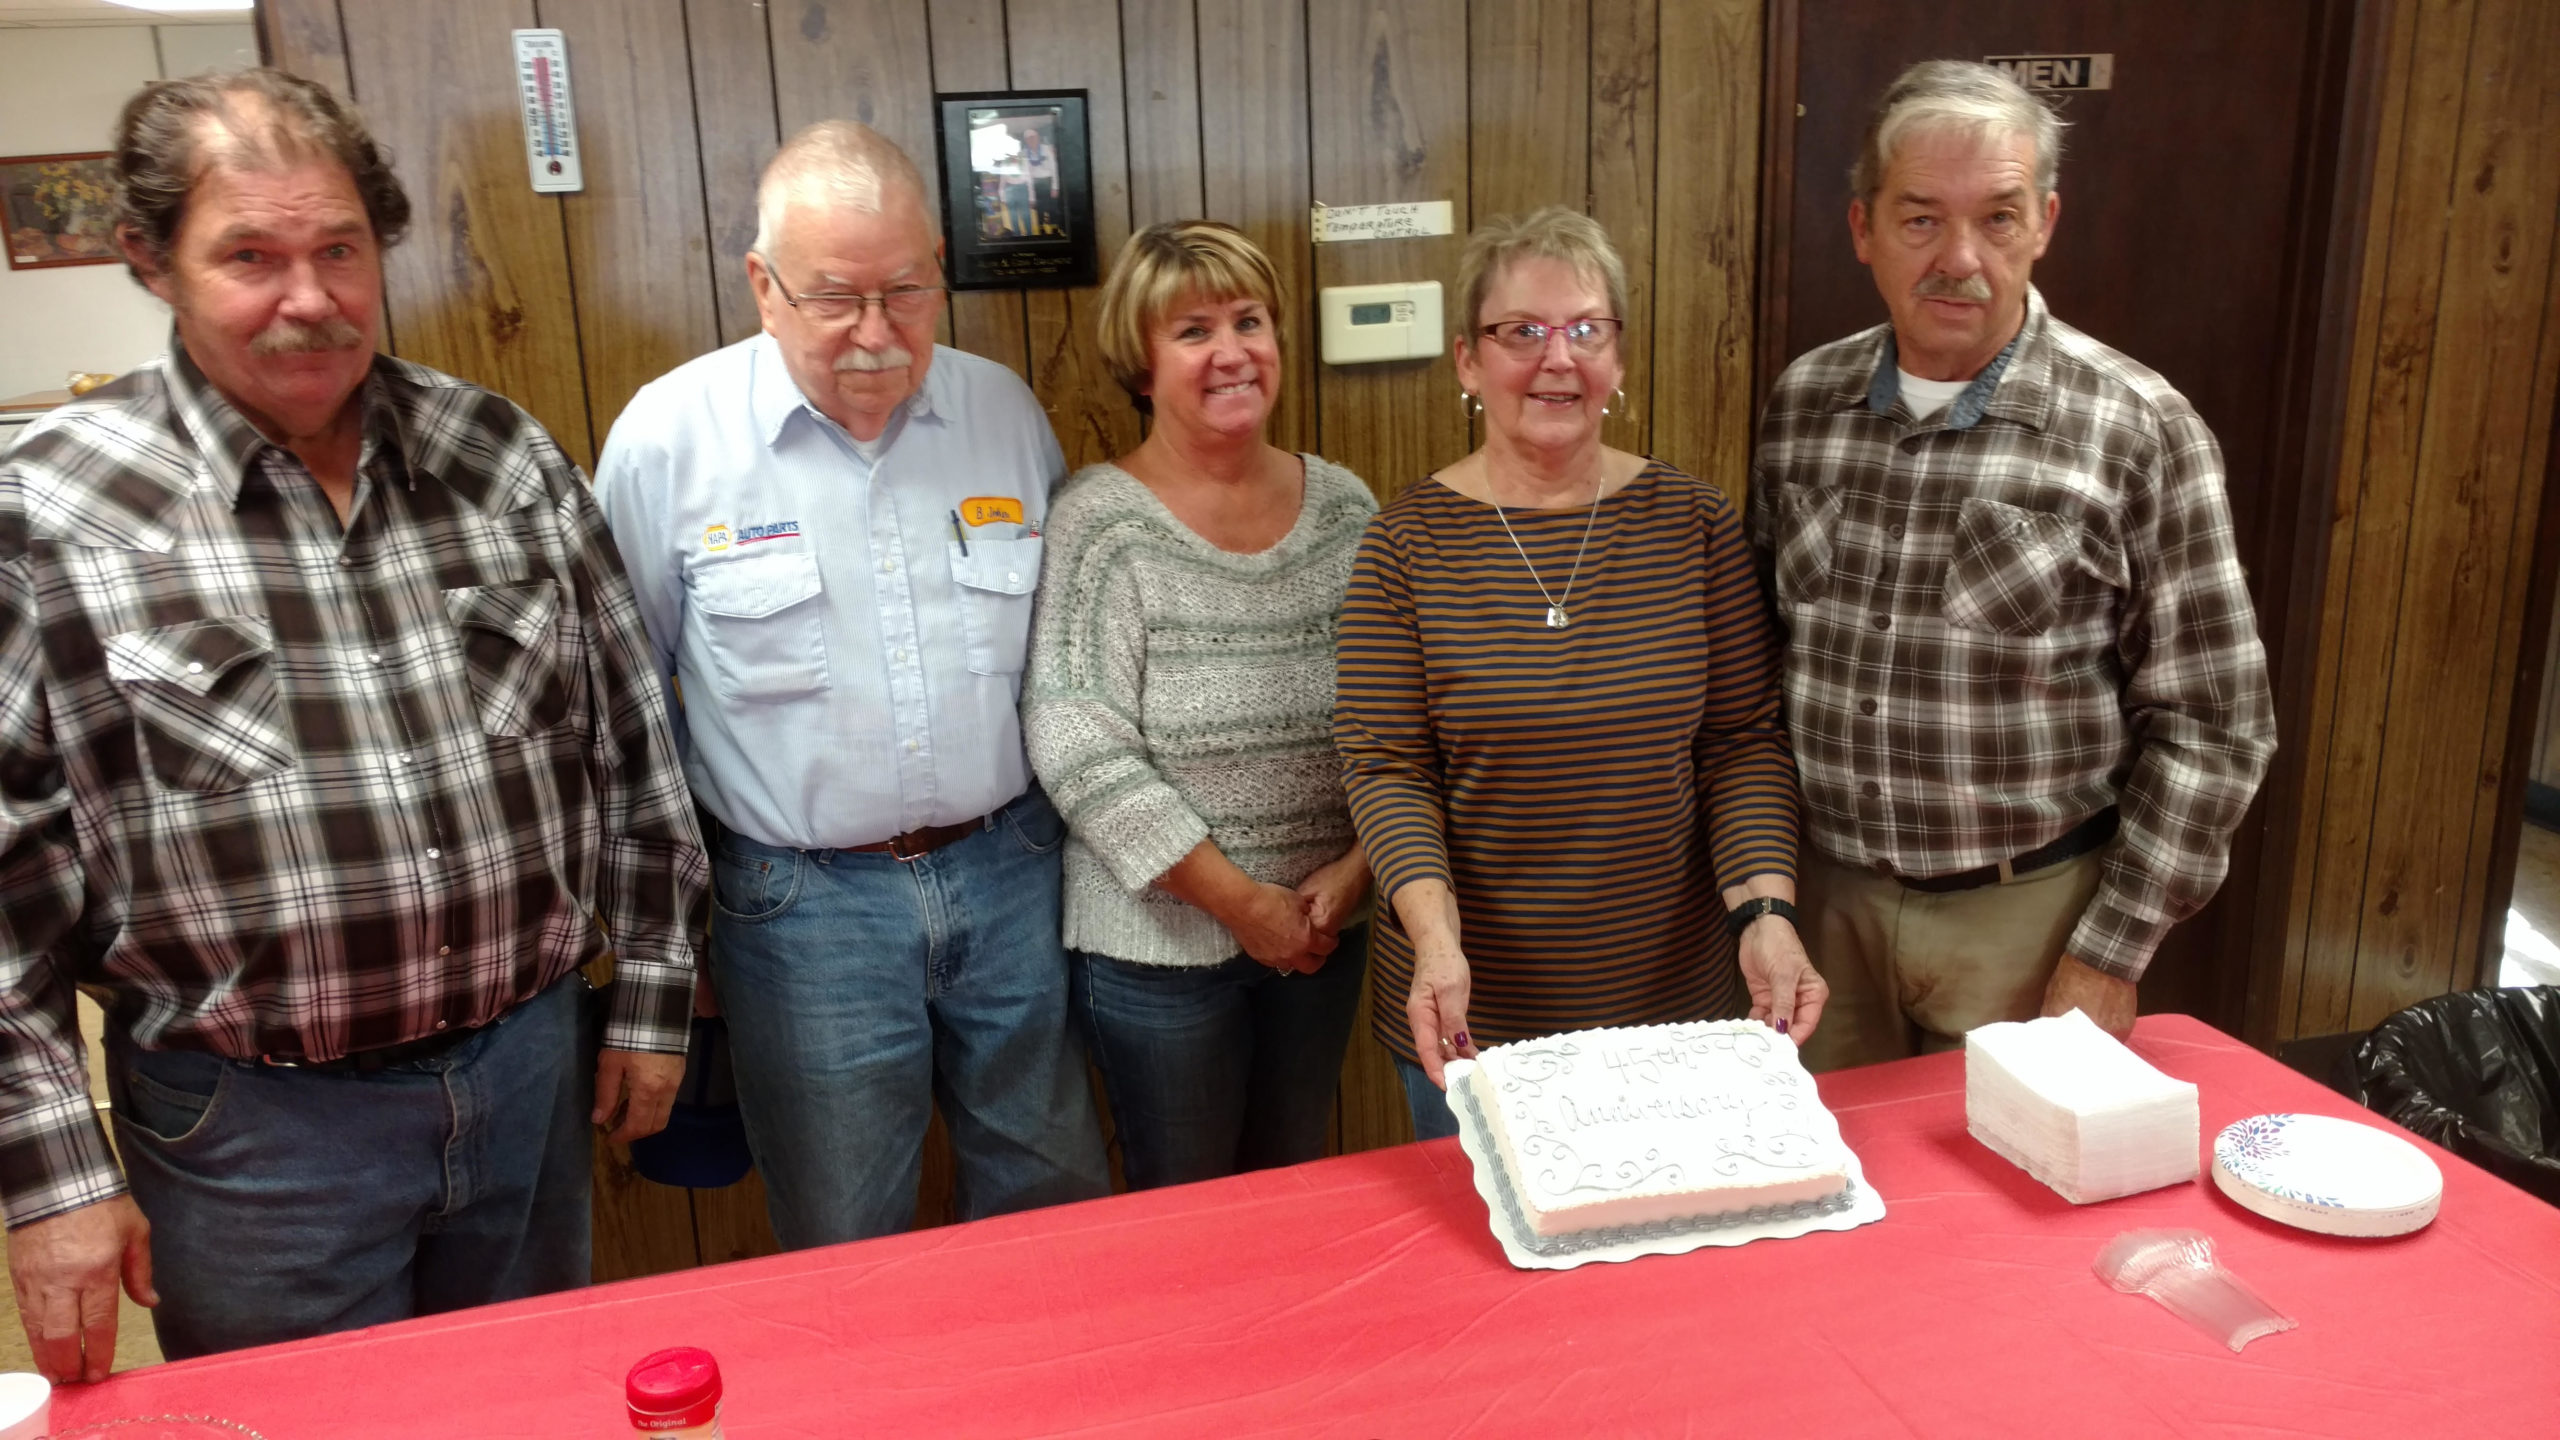 45th anniversary of Caboose's Arrival in Vandalia recognized